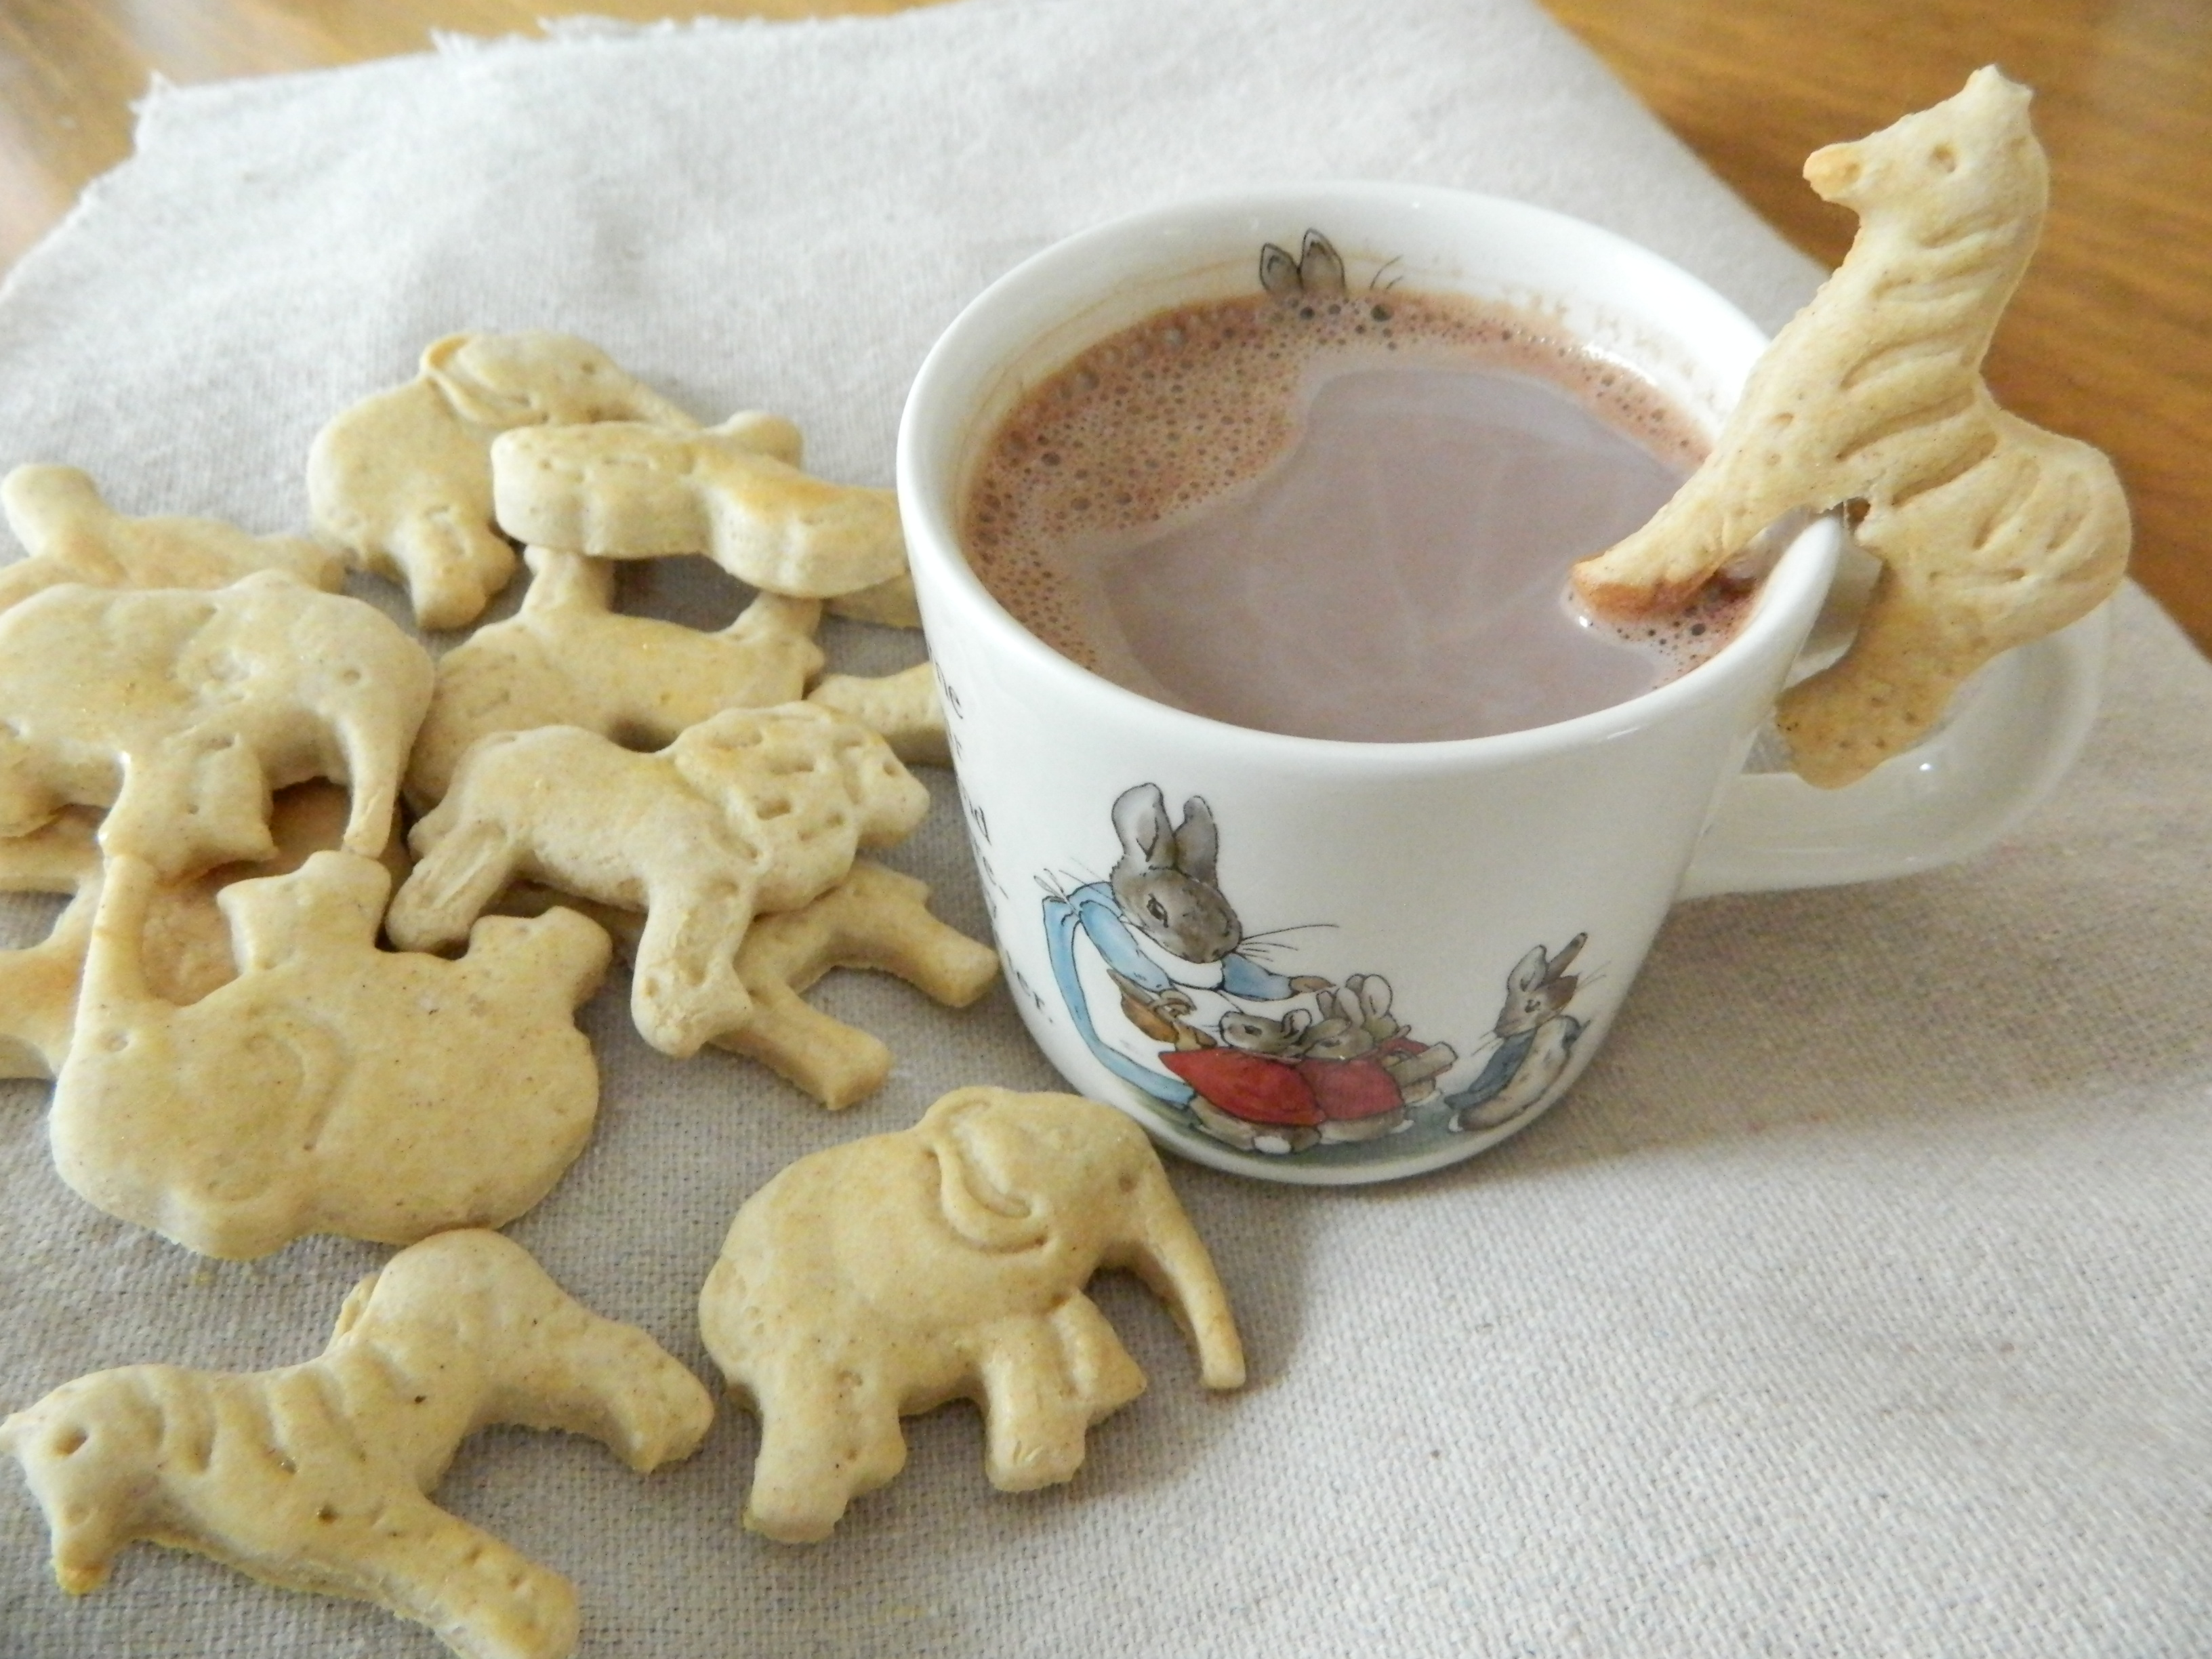 Animal Crackers and Cocoa to drink - finestofsuppers.com